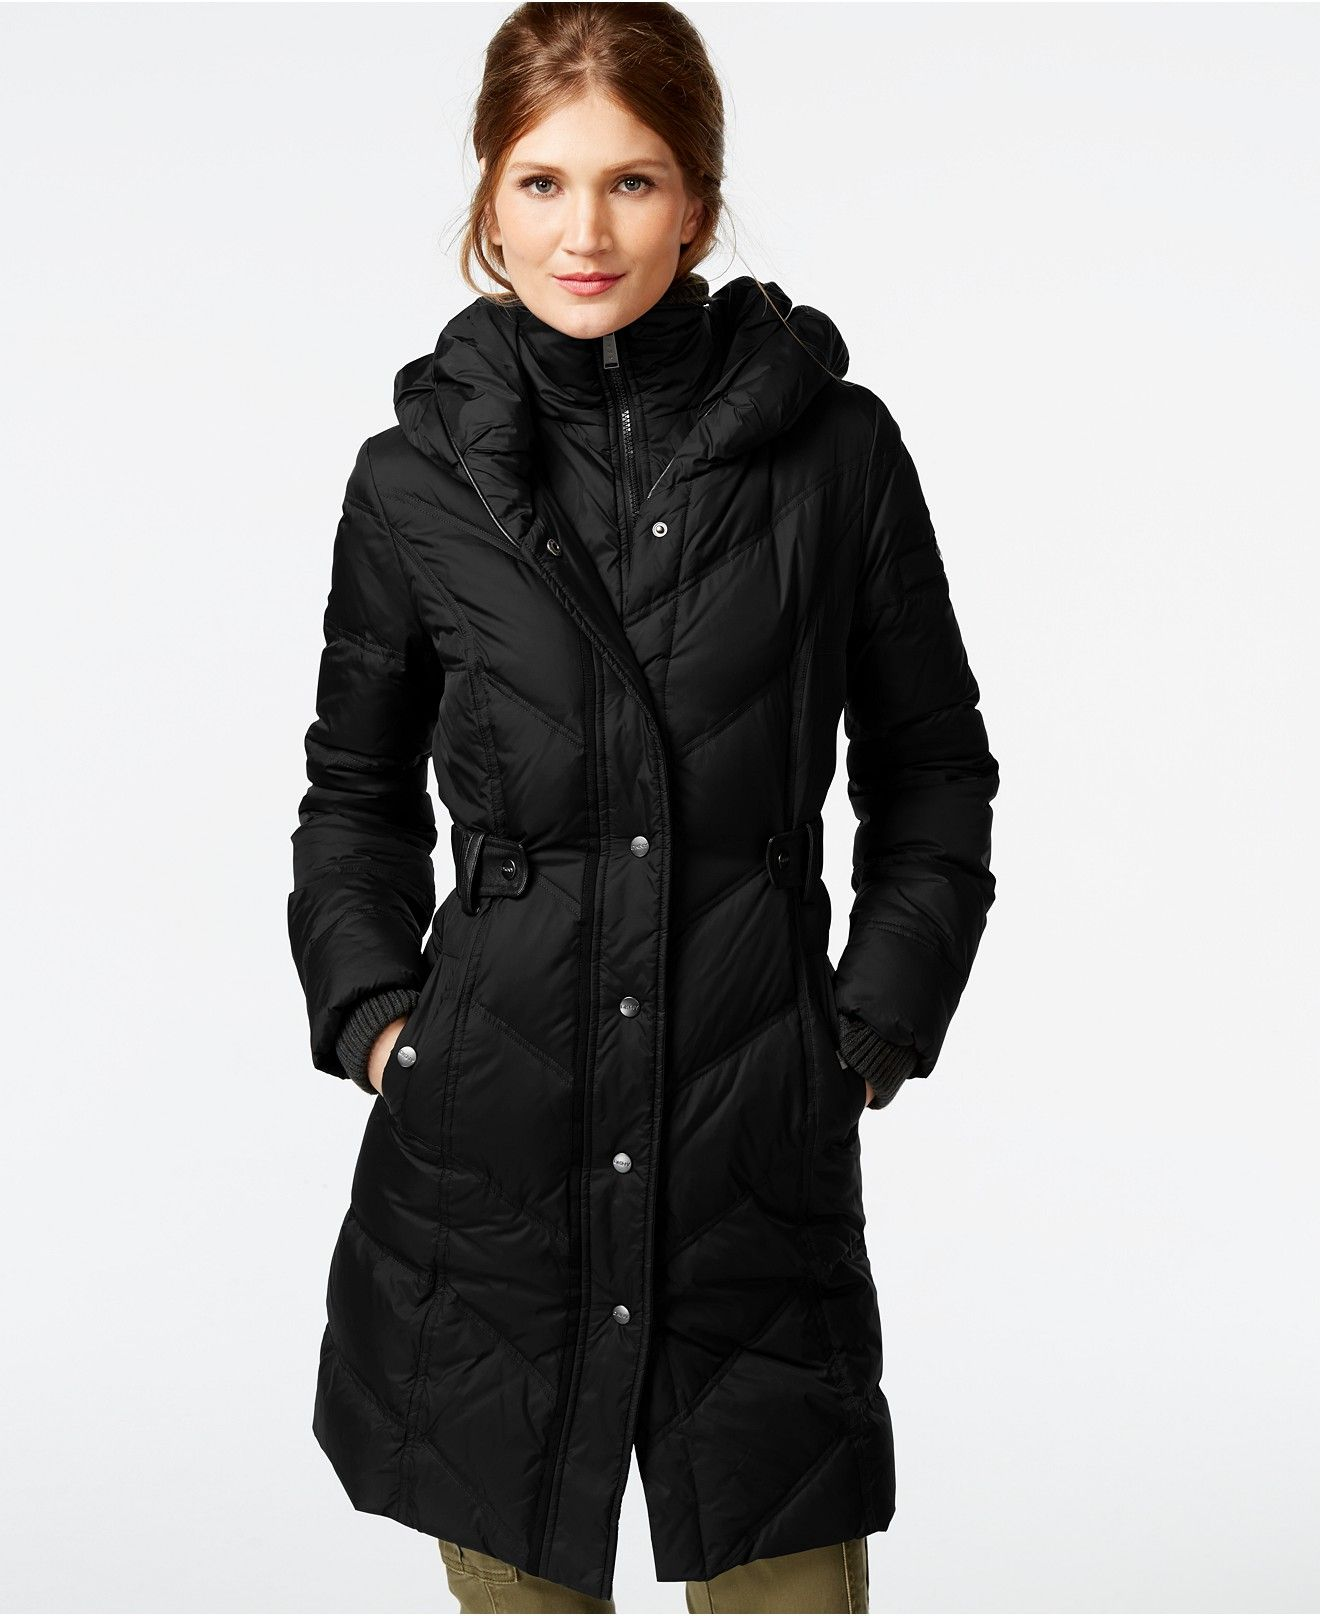 d65a2908a DKNY Faux-Leather-Trim Quilted Down Coat - Coats - Women - Macy's ...